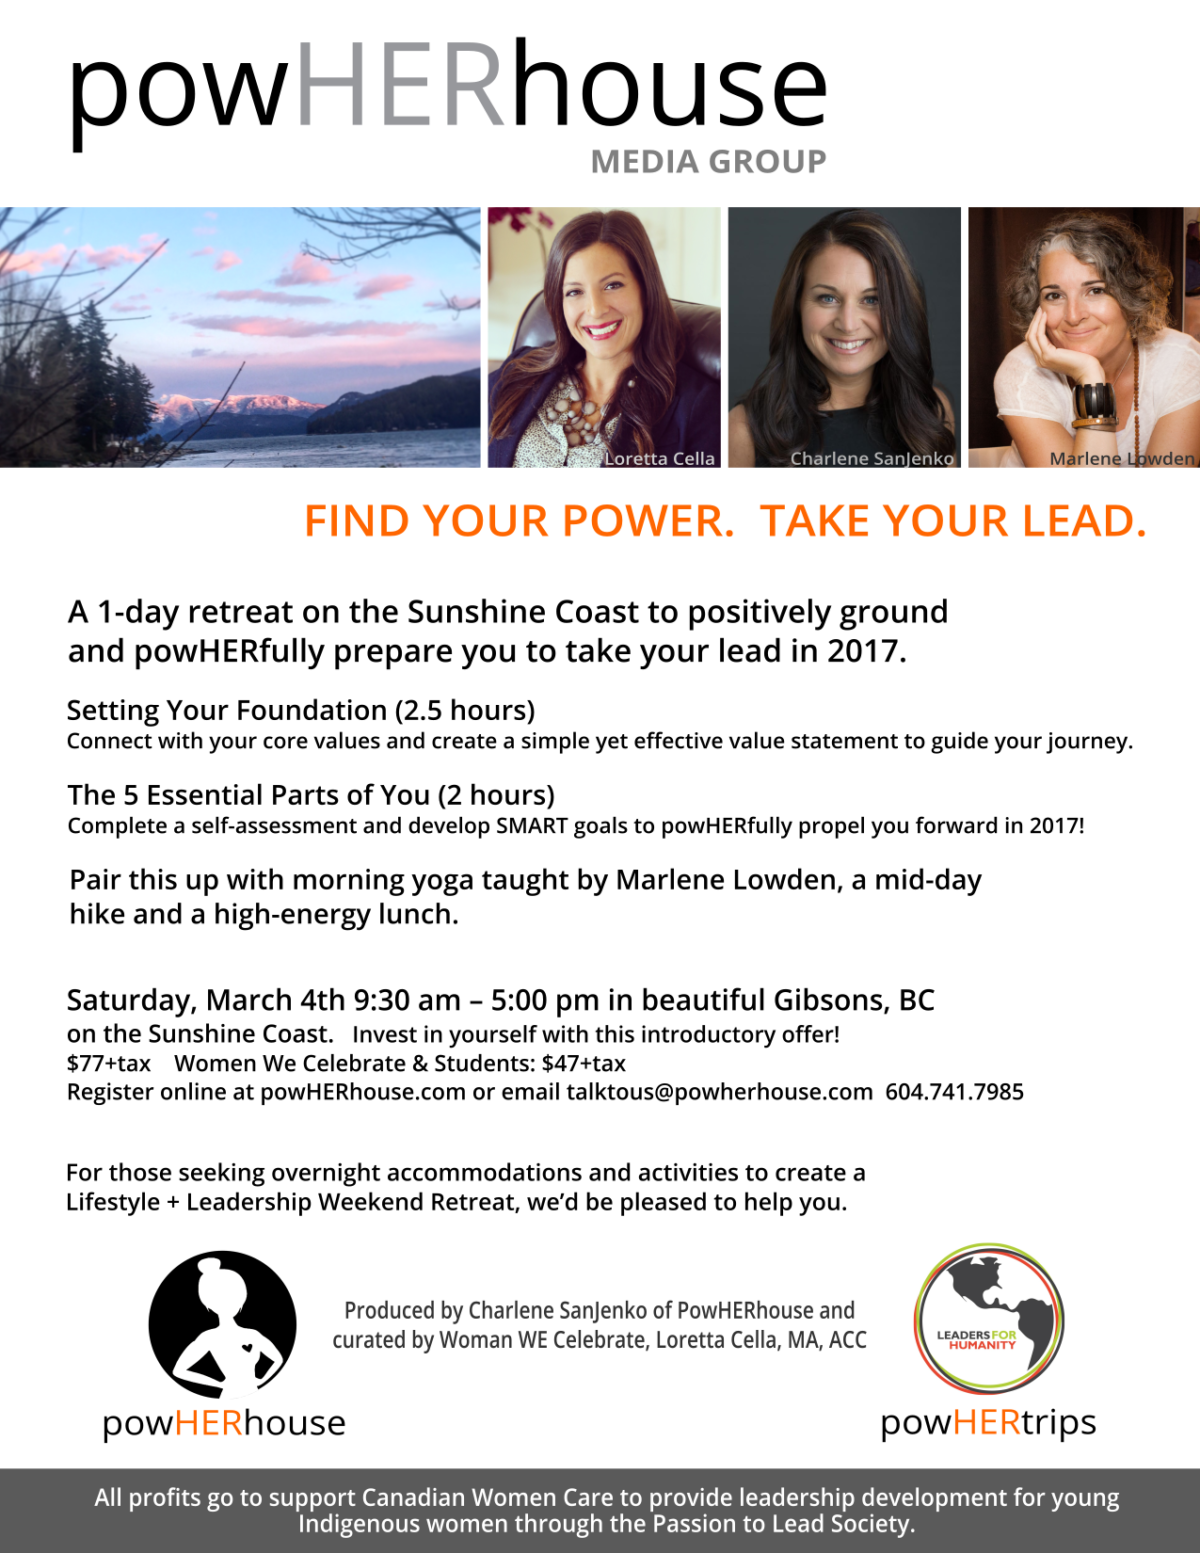 1-Day Lifestyle + Leadership Retreat